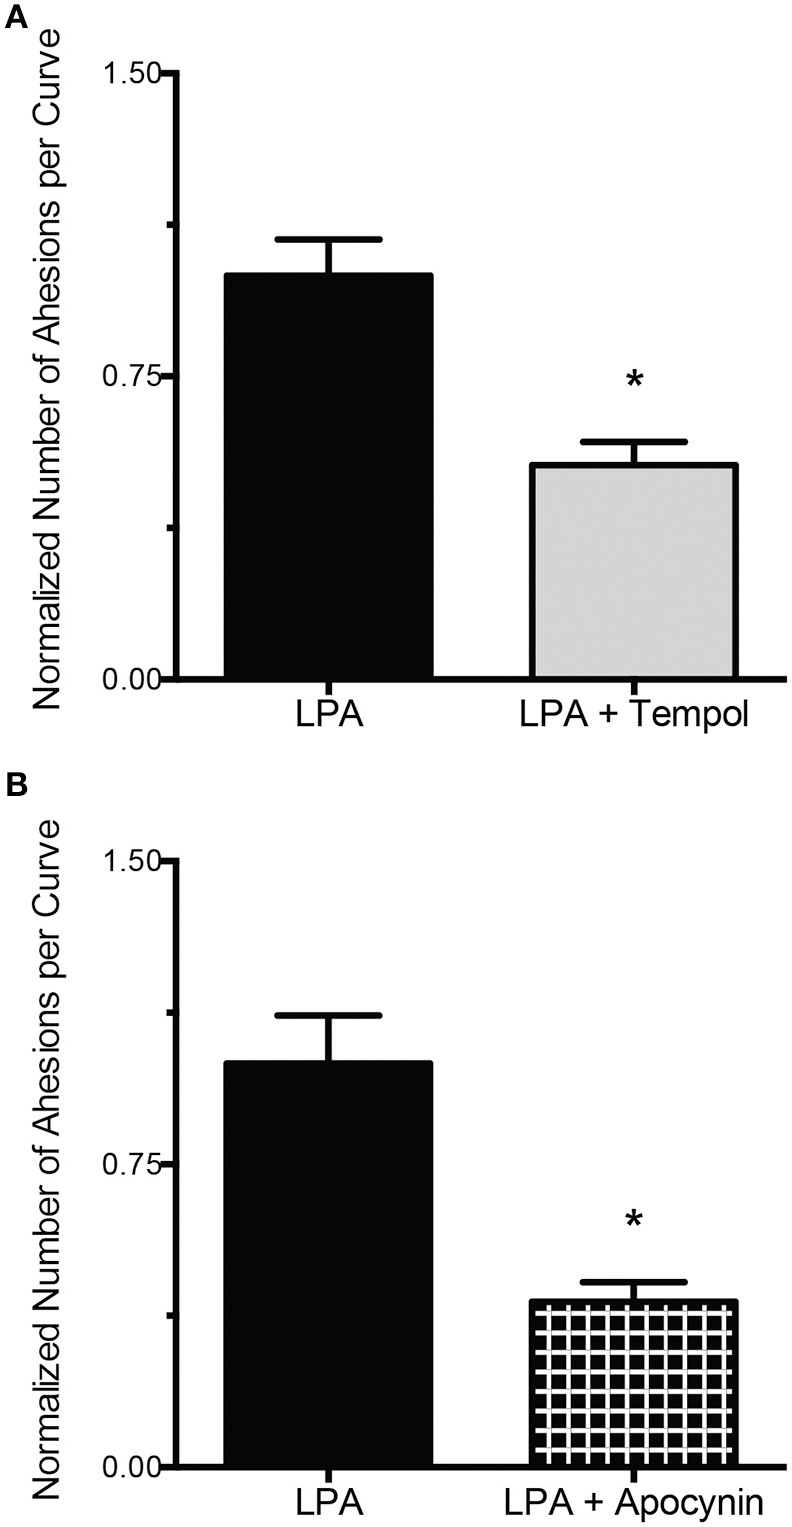 ROS inhibition abolishes the LPA-induced increase in FN-integrin binding . (A) Incubation of VSMC with LPA (2 μM) for 2 h in the presence of tempol (250 μM, n = 36) results in a 47% decrease in FN-integrin adhesion compared with LPA alone ( n = 35). (B) Compared with LPA alone ( n = 40), 2 h of LPA (2 μM) treatment, in the presence of apocynin (300 μM, n = 39), reduced FN-integrin adhesion by 59%. Data are means ± s.e.m. * P